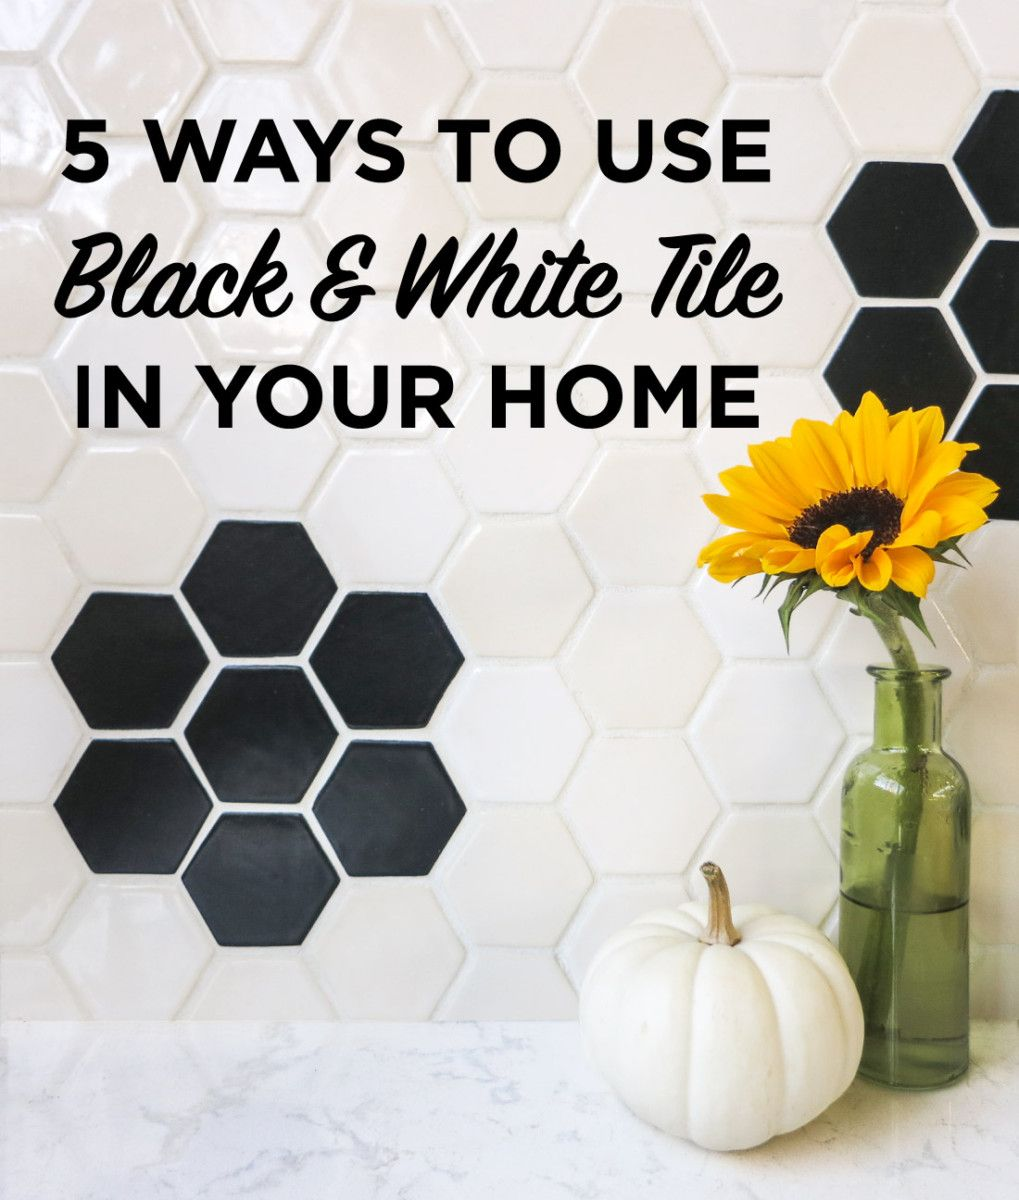 Black And White Tile Ideas 5 Ways To Use Black And White